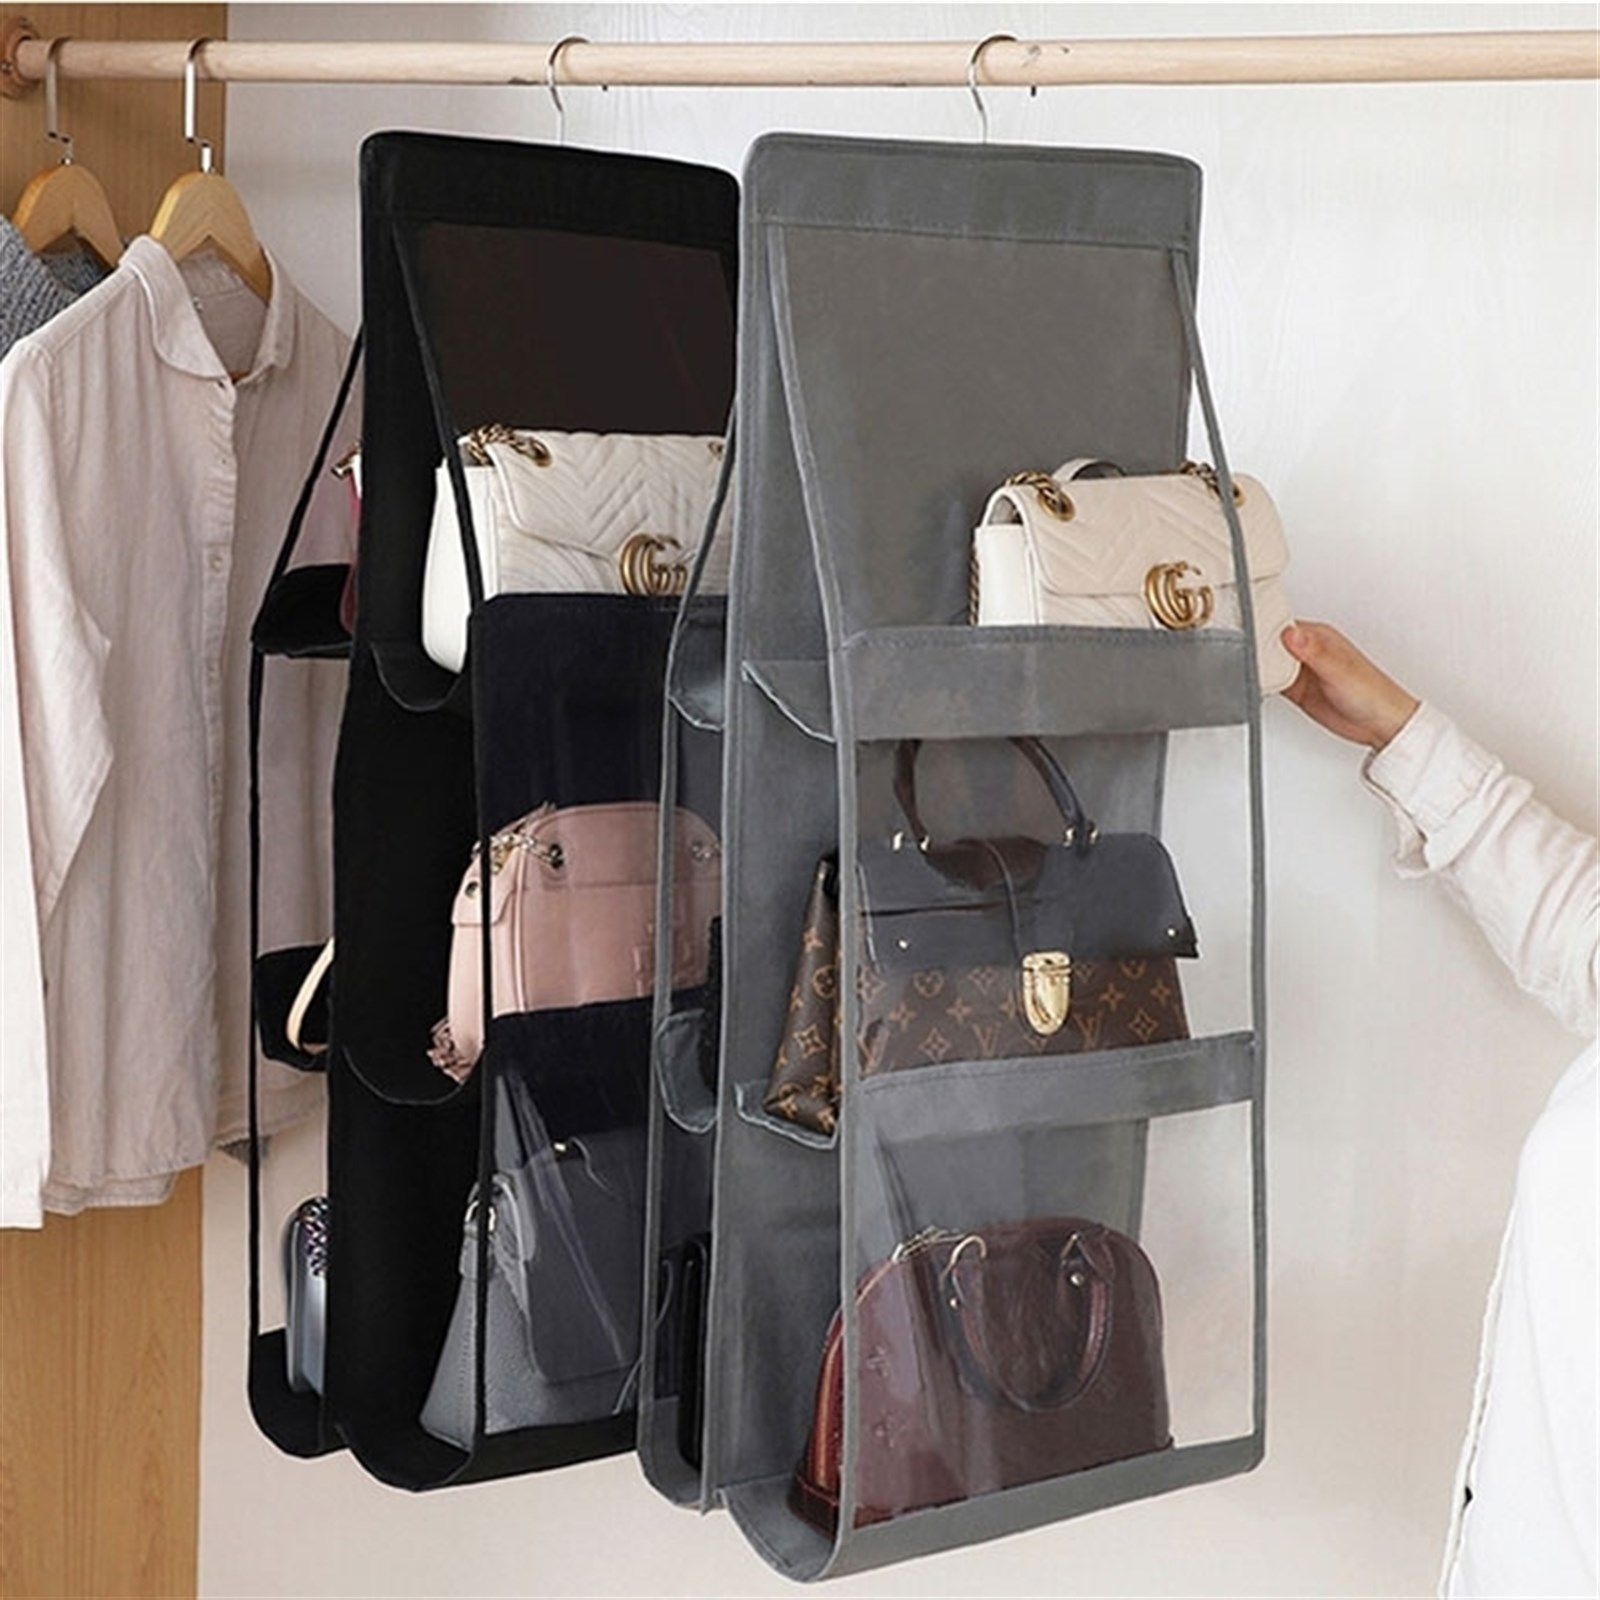 Hanging Storage Organizer 6 Pockets Hanging Purses Hanging Storage Bag Storage